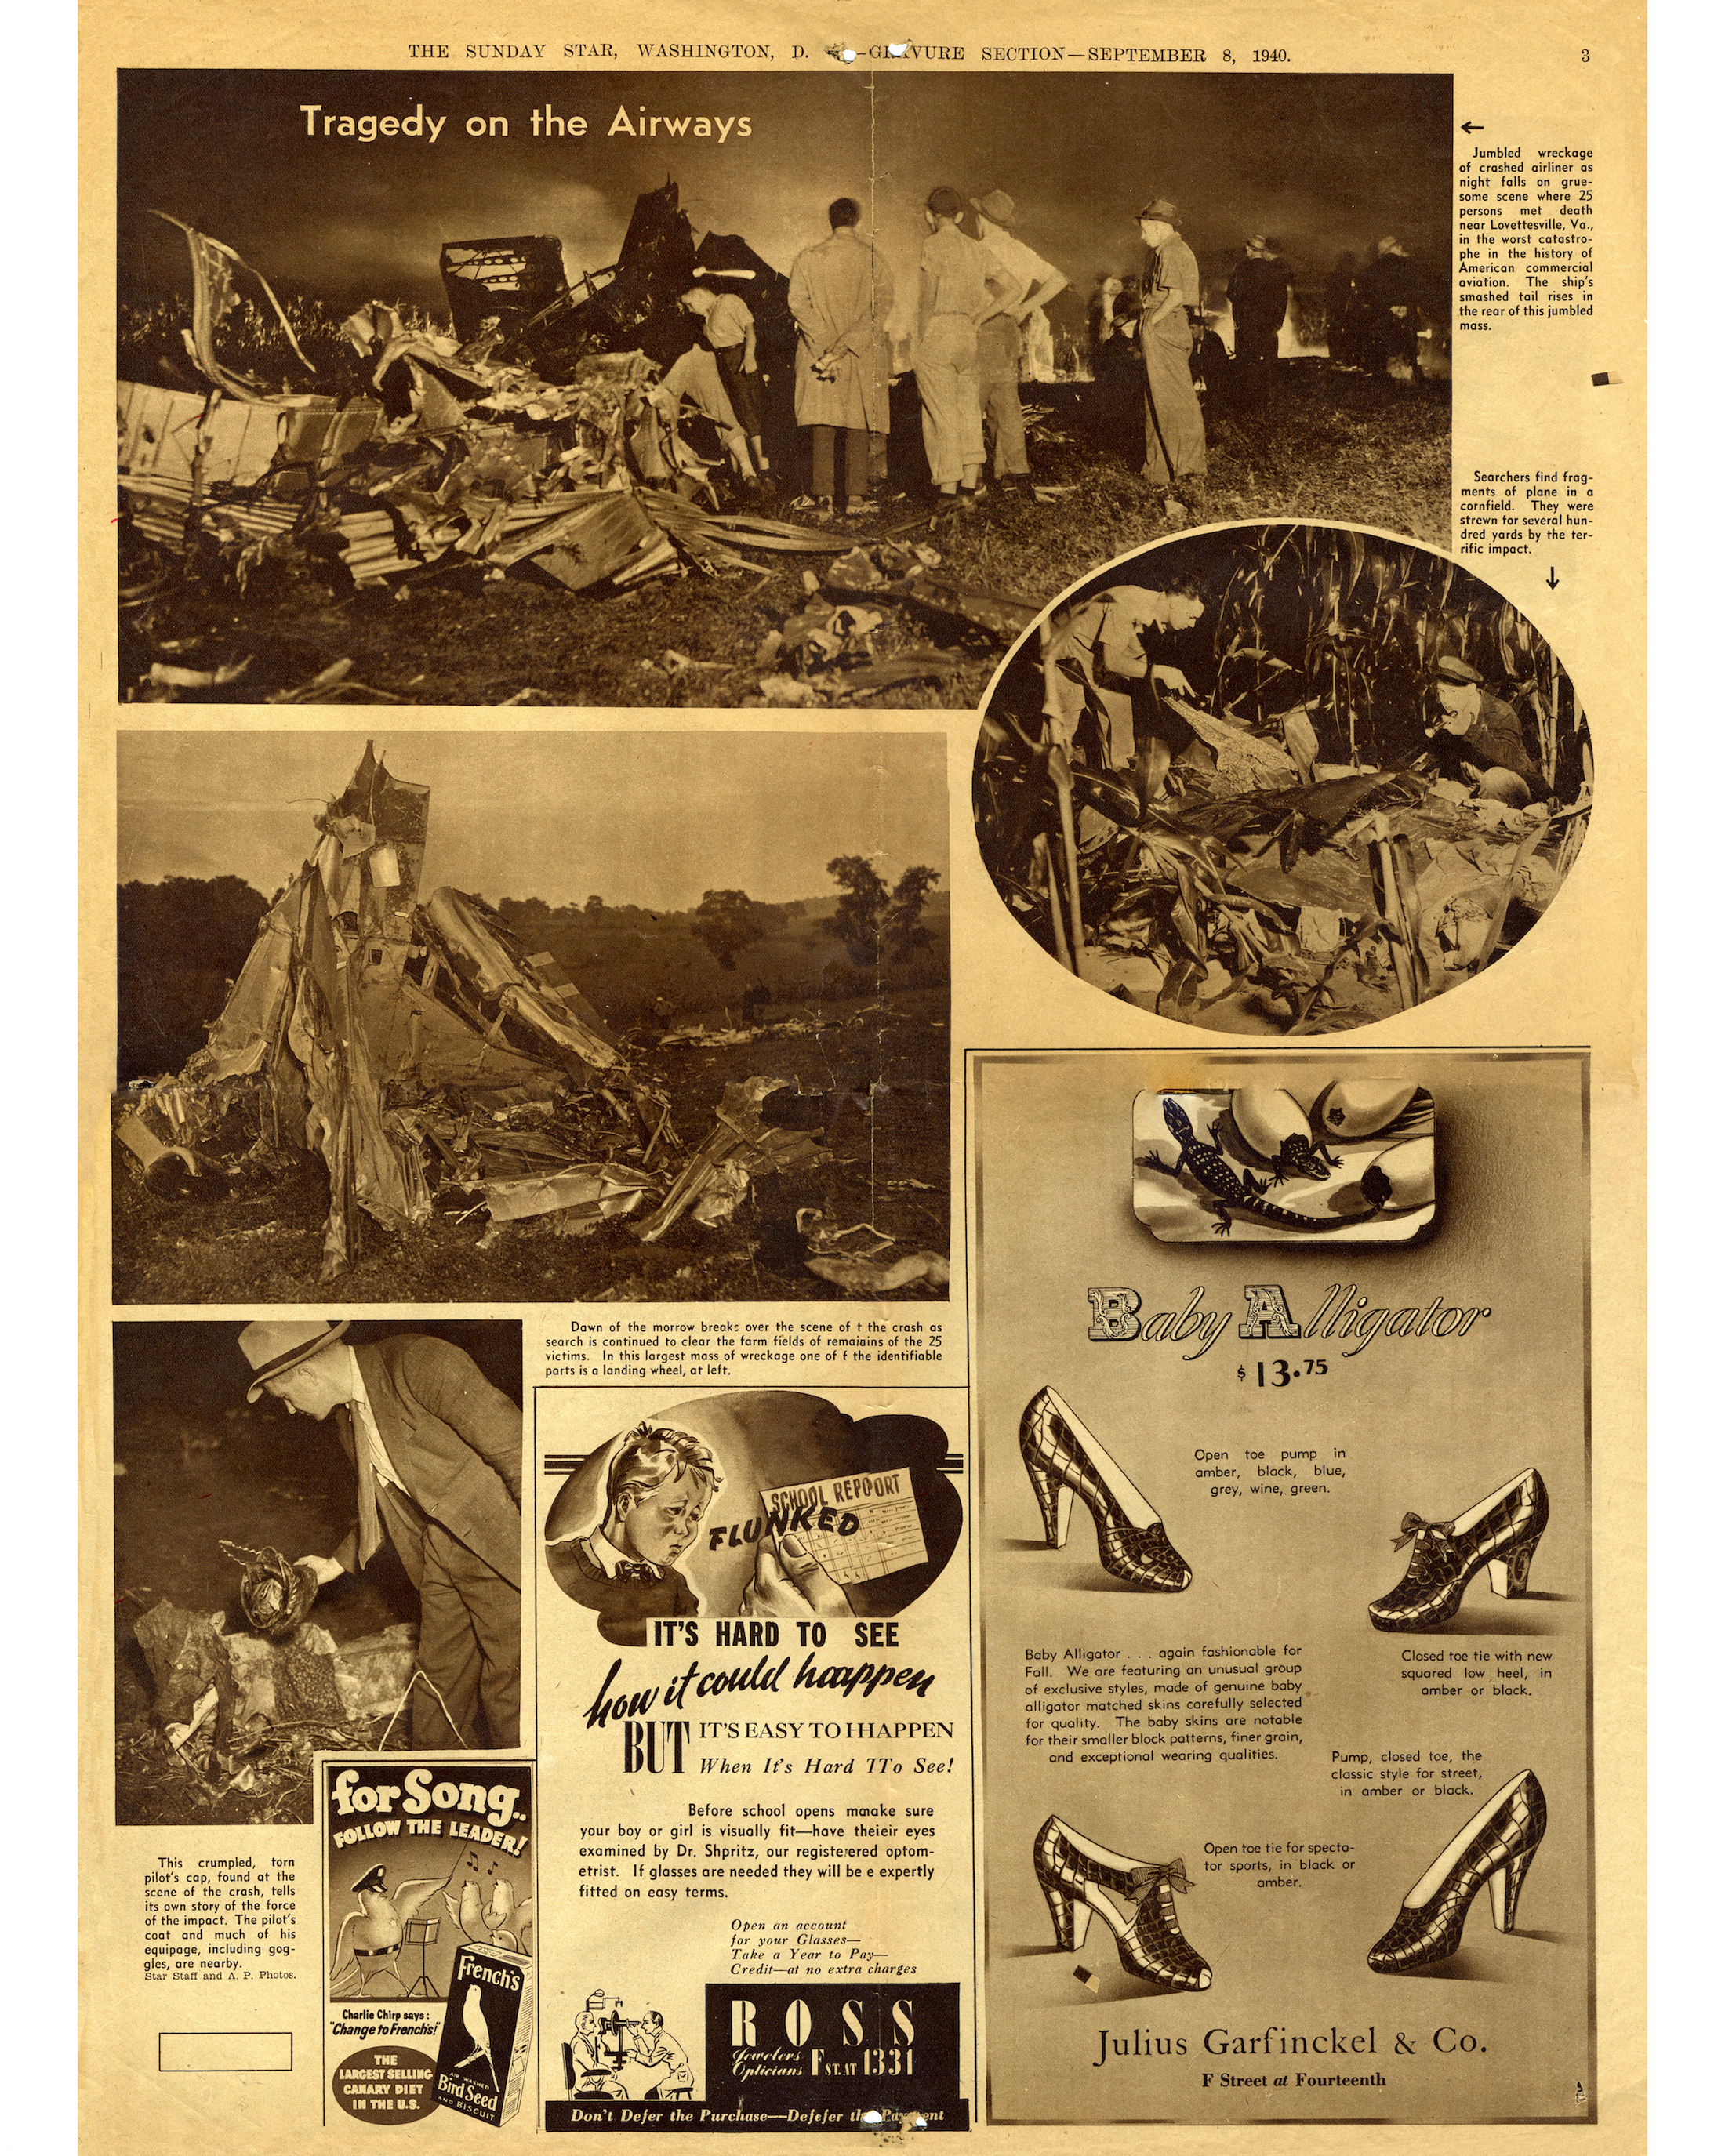 1940-09-08-lovettsville-air-disaster-sunday-star-gravure-section-washington-dc_full-page-8x10-inch_275dpi